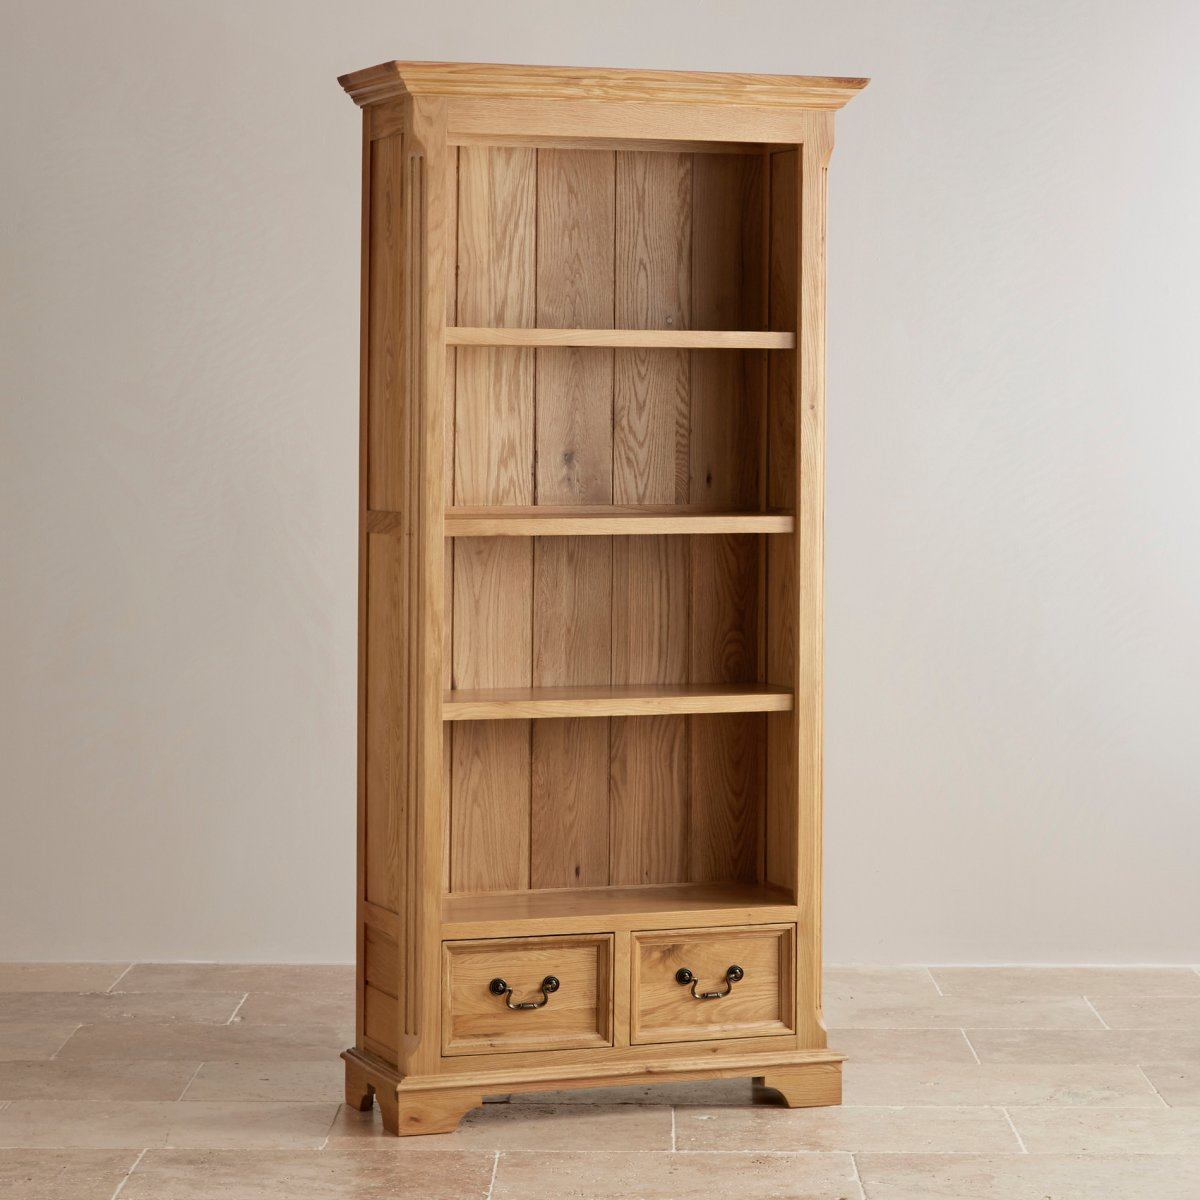 edinburgh tall bookcase in natural solid oak oak